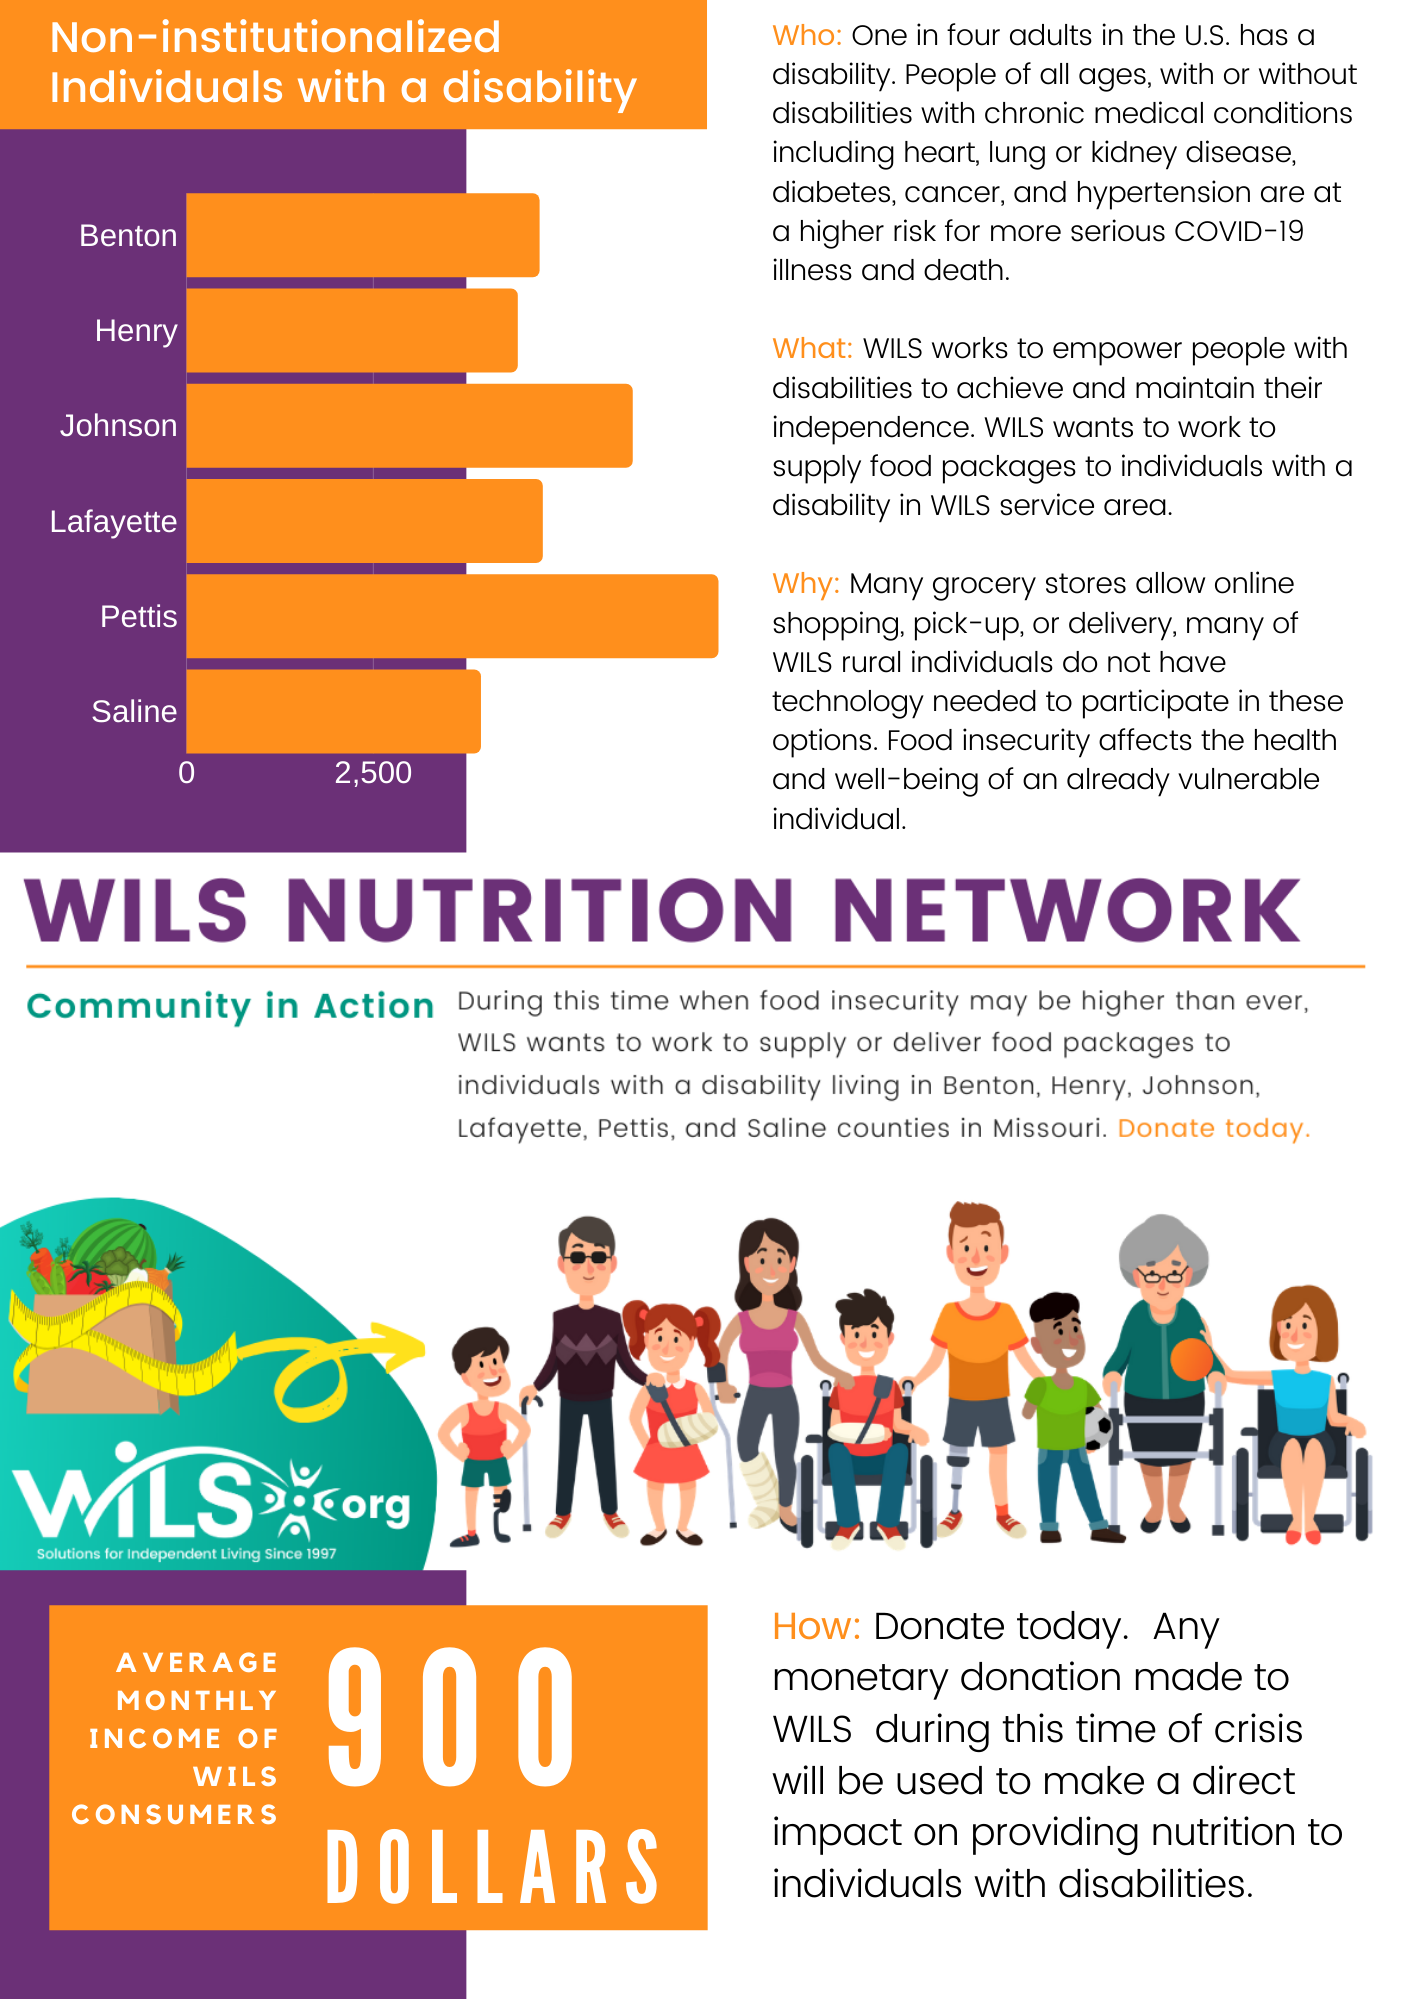 During this time when food insecurity may be higher than ever, WILS wants to work to supply or deliver food packages to individuals with a disability living in Benton, Henry, Johnson, Lafayette, Pettis, and Saline counties in Missouri. Donate today.